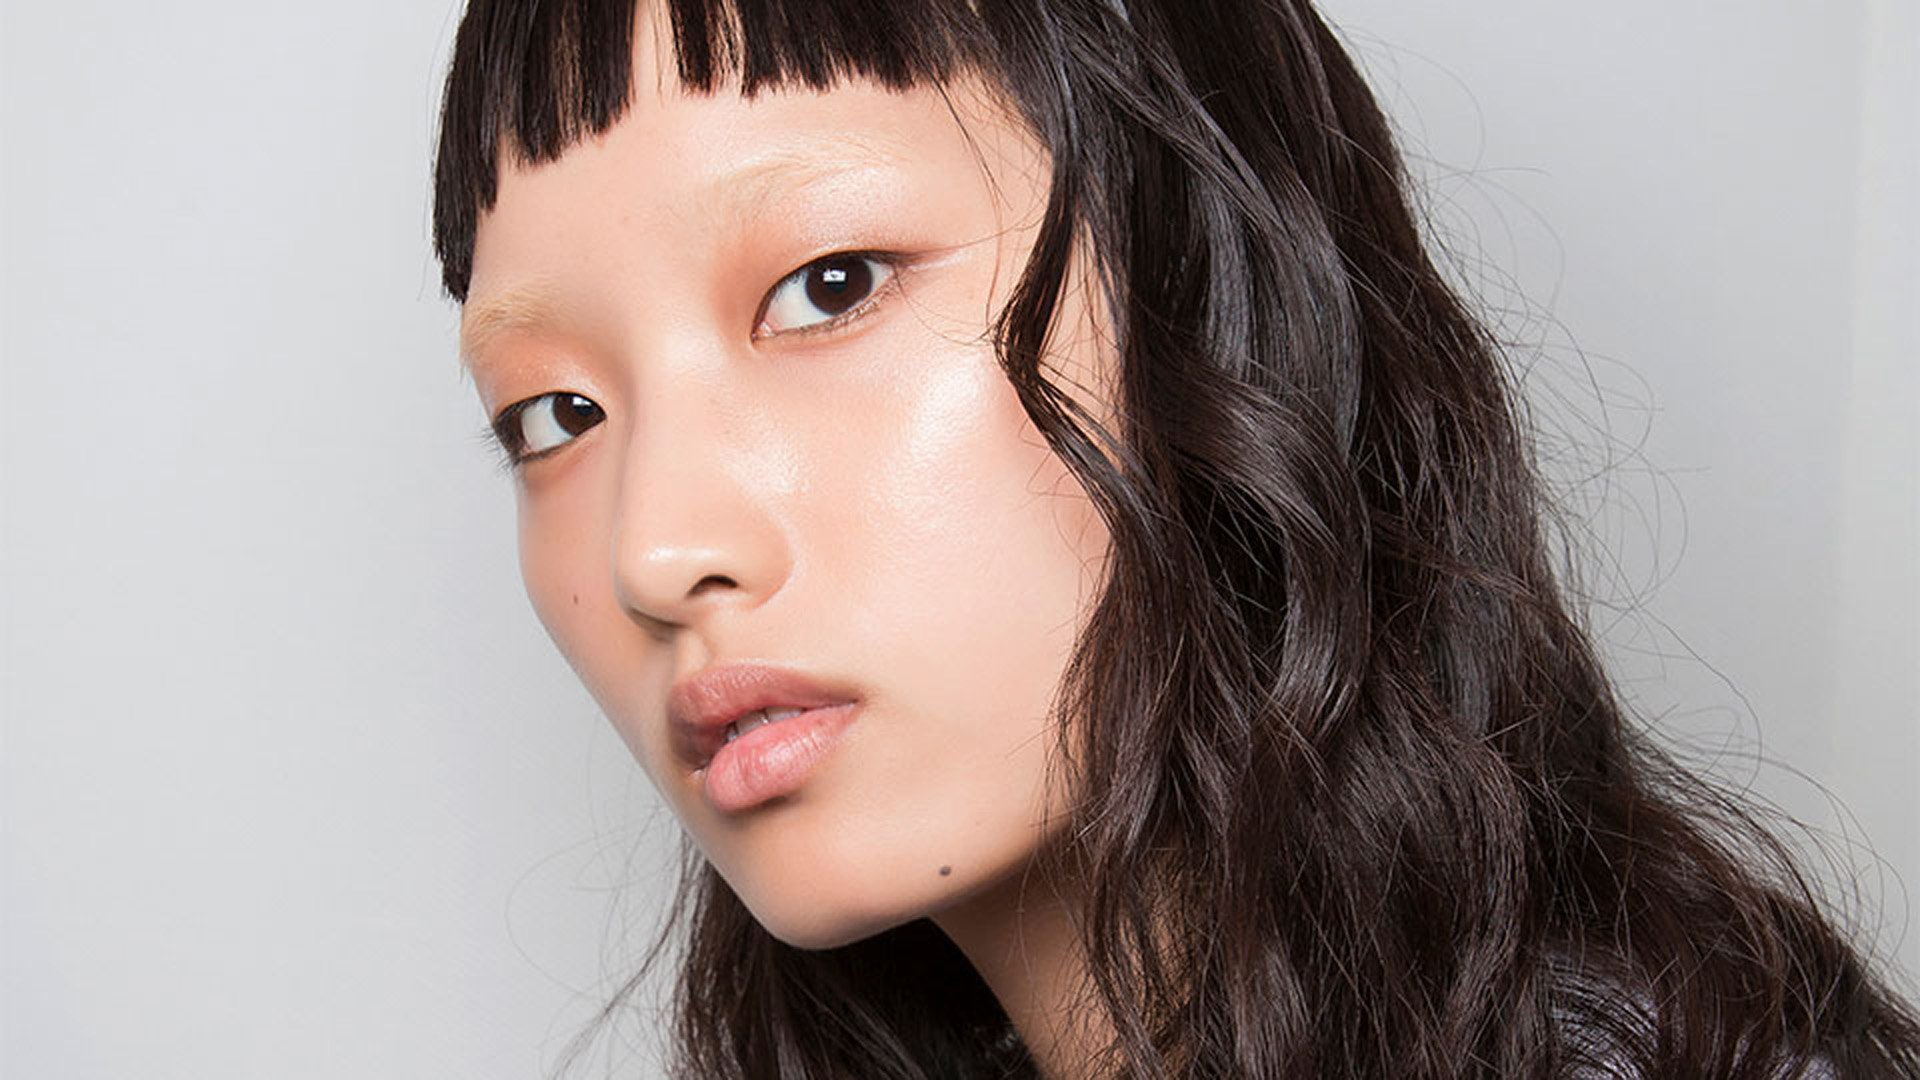 Skin Care Trends in 2019 May Mark the End of 10-Step Routines